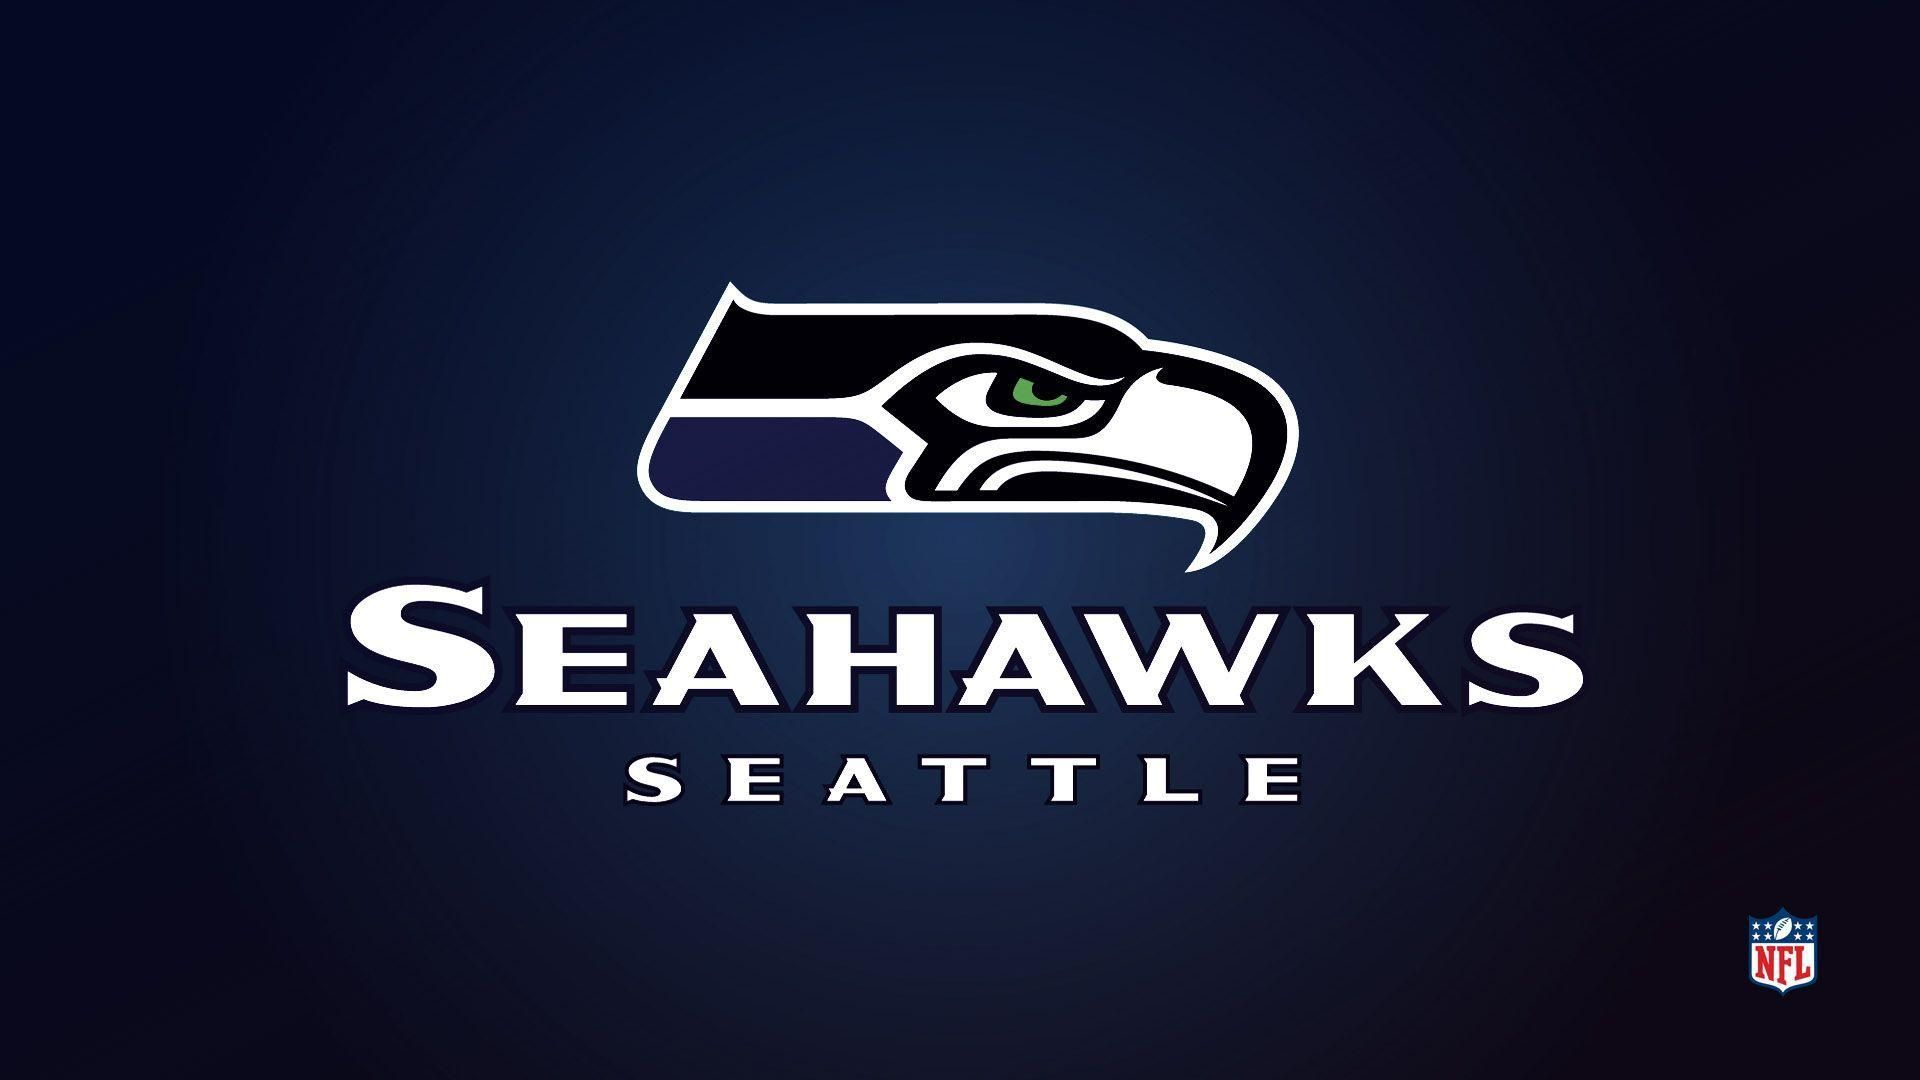 Seattle Seahawks Wallpapers Mywallpapers Site In 2020 Seattle Seahawks Seattle Seahawks Logo Nfl Seattle